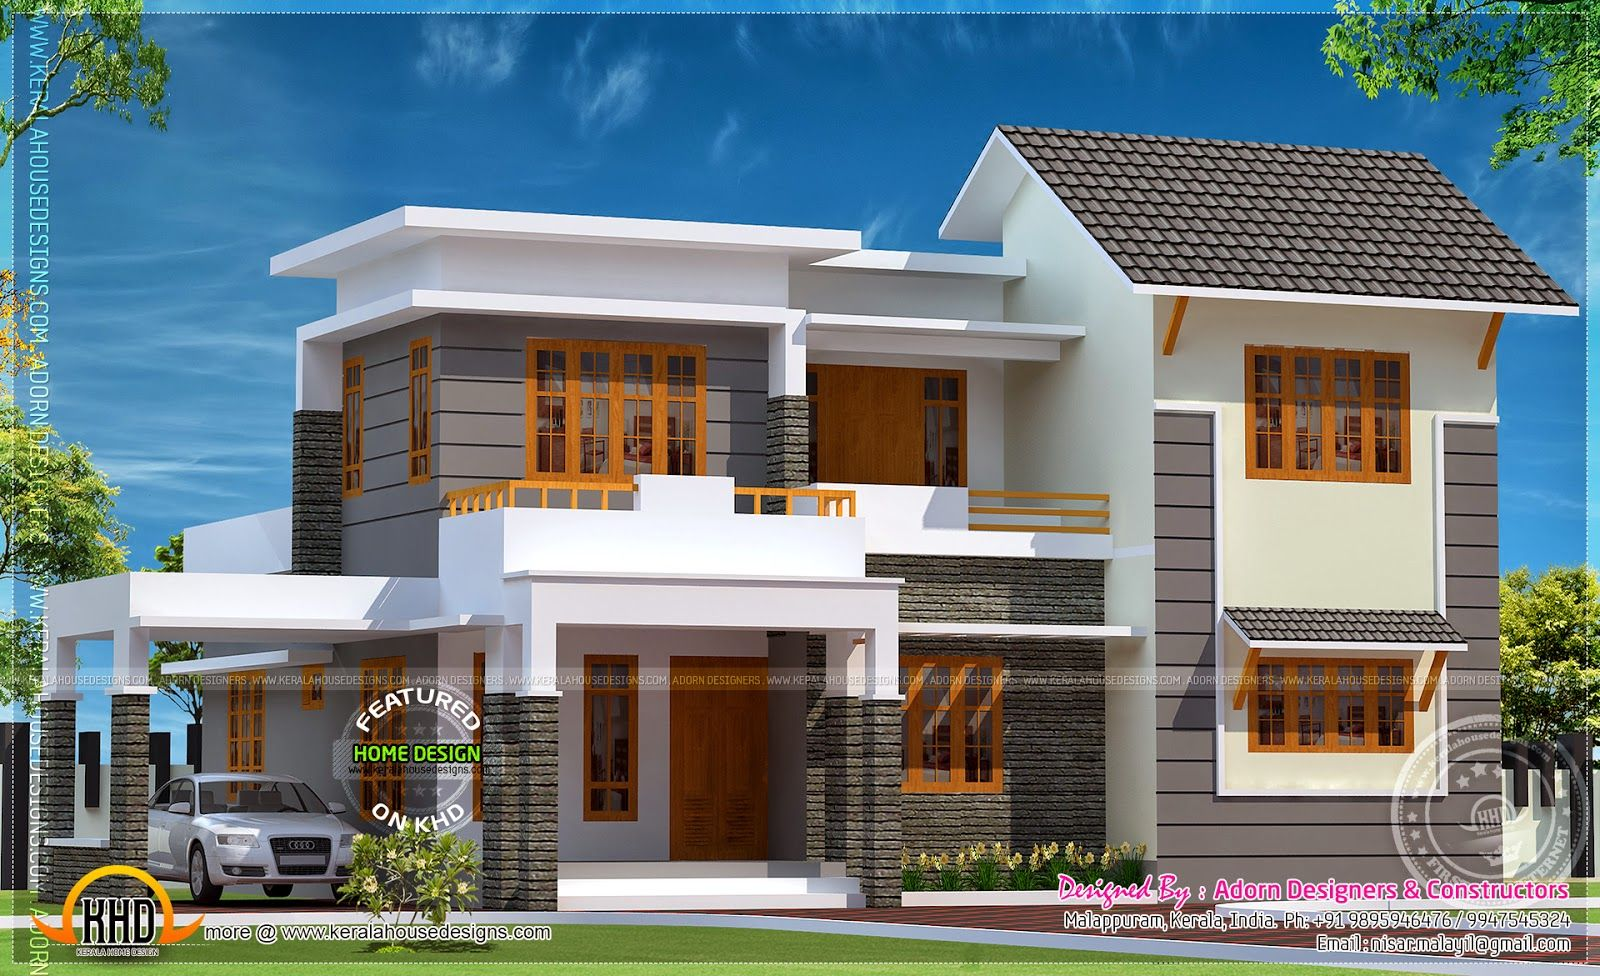 Contemporary Home Designs At Malappuram Part - 19: 1850 Square Feet 4 Bedroom Elegant Looking House Elevation Design By Adorn  Designers U0026 Constructors, Malappuram, Kerala